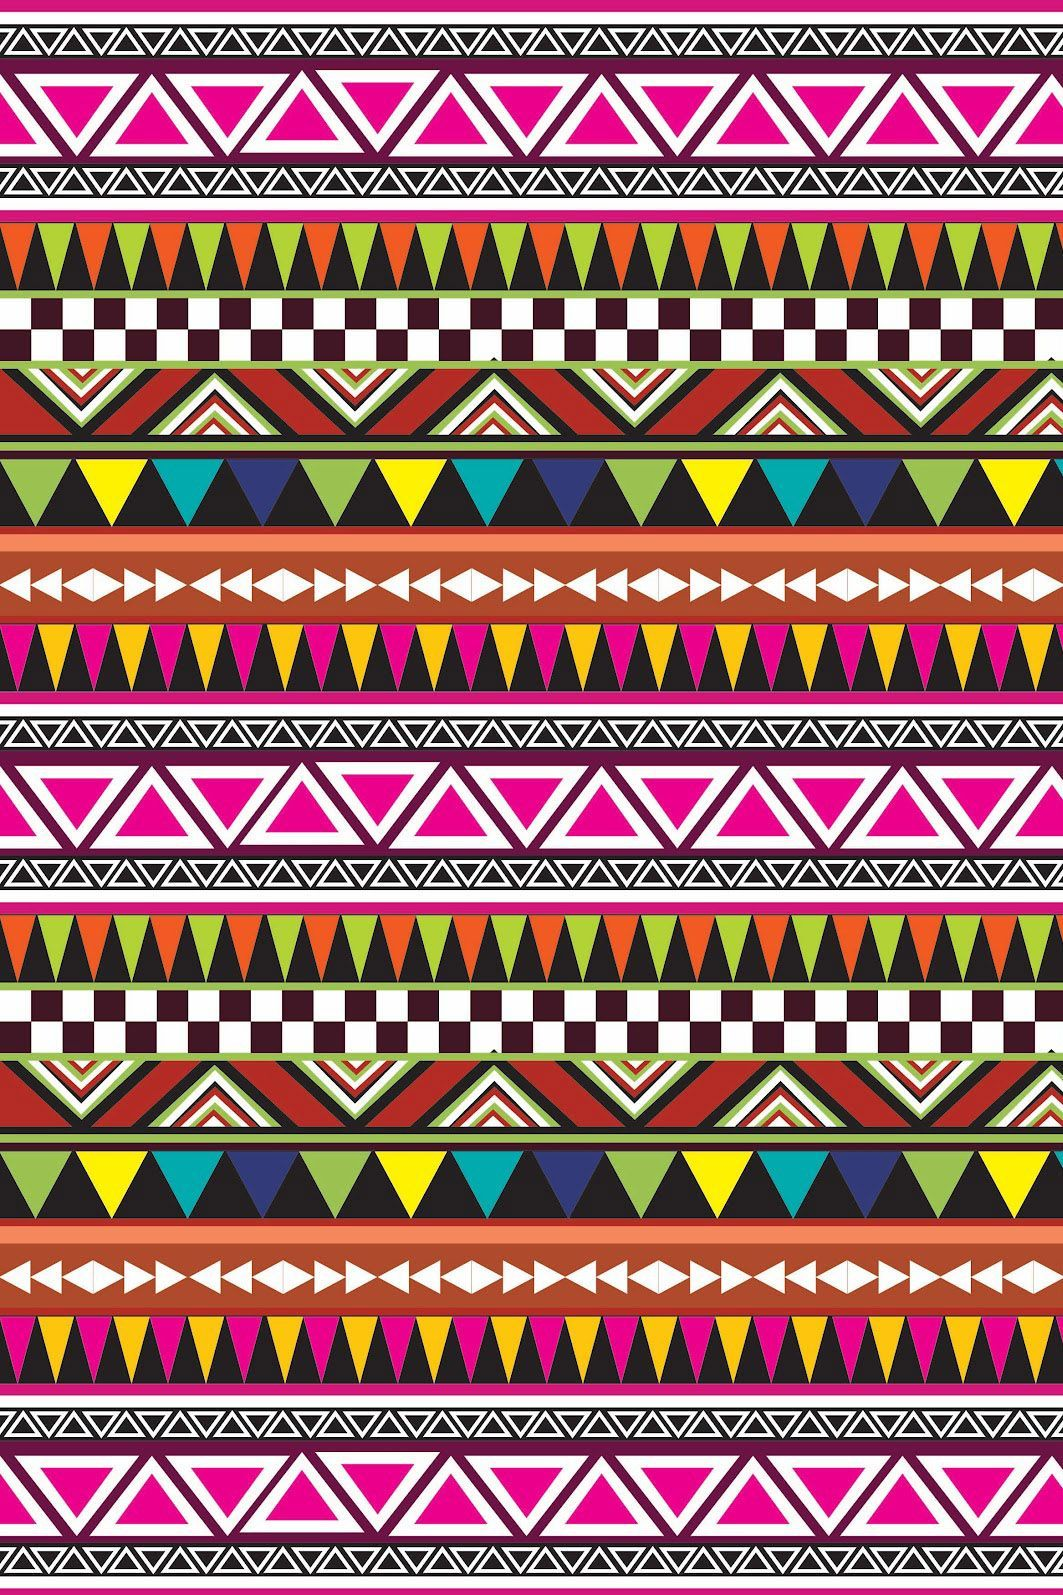 1063x1595 simple aztec pattern - Google Search | Phone WALLPAPERS | Pinterest ...